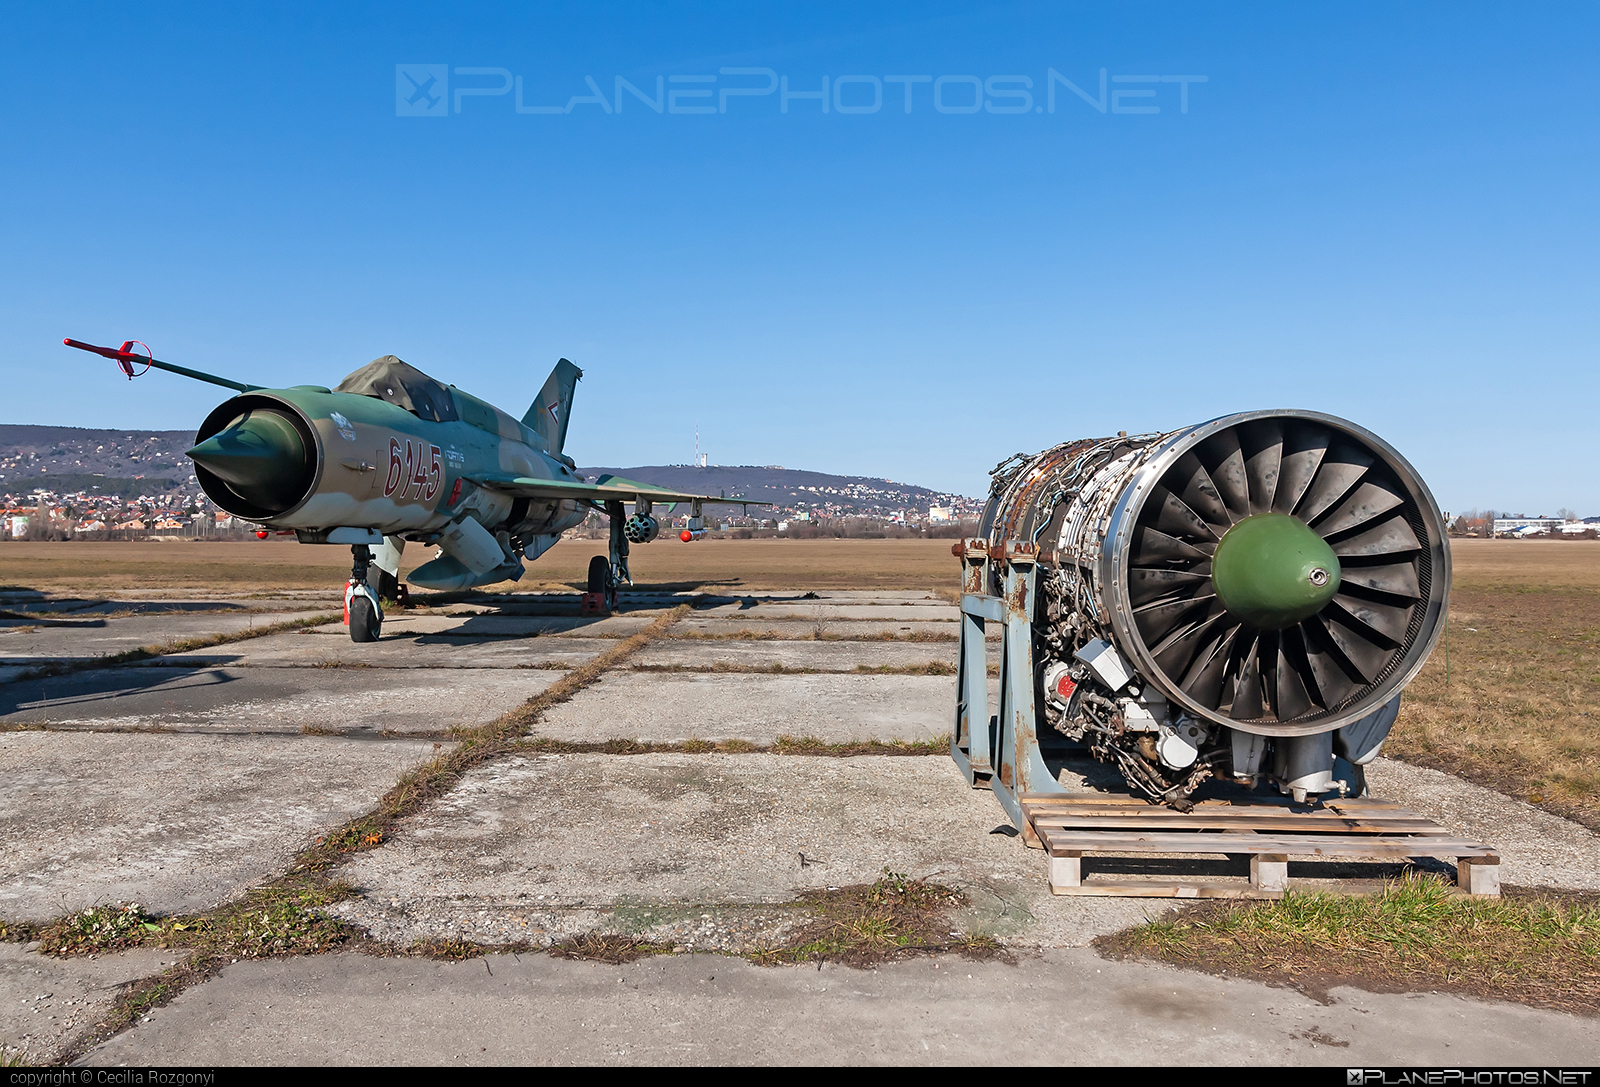 Mikoyan-Gurevich MiG-21bis - 6145 operated by Magyar Légierő (Hungarian Air Force) #hungarianairforce #magyarlegiero #mig #mig21 #mig21bis #mikoyangurevich